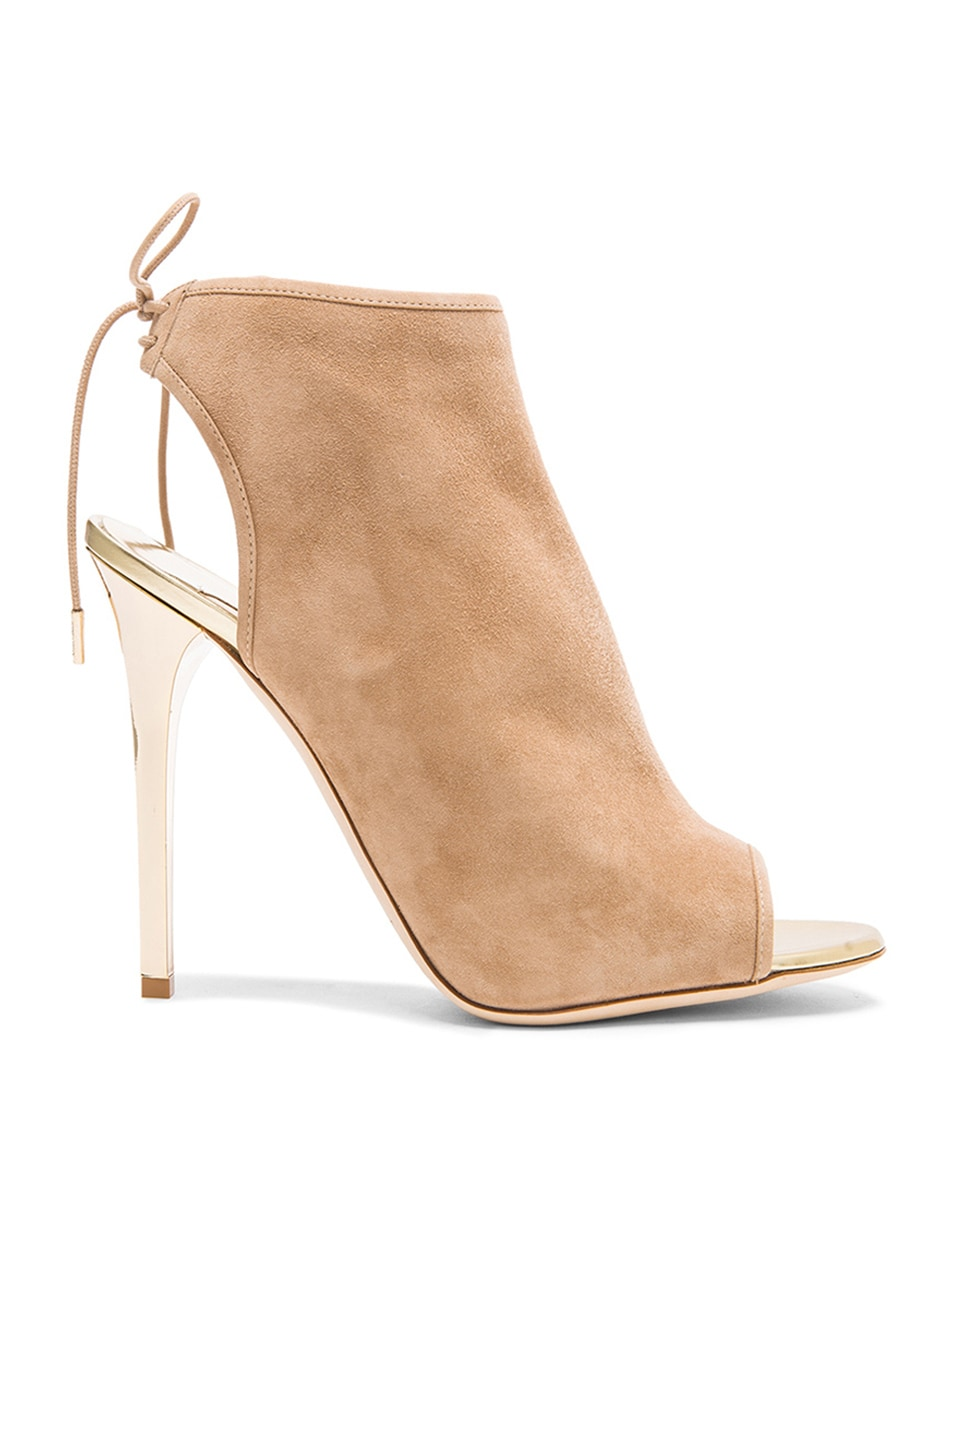 Image 1 of Jimmy Choo Flume Suede Ankle Booties in Champagne & Nude